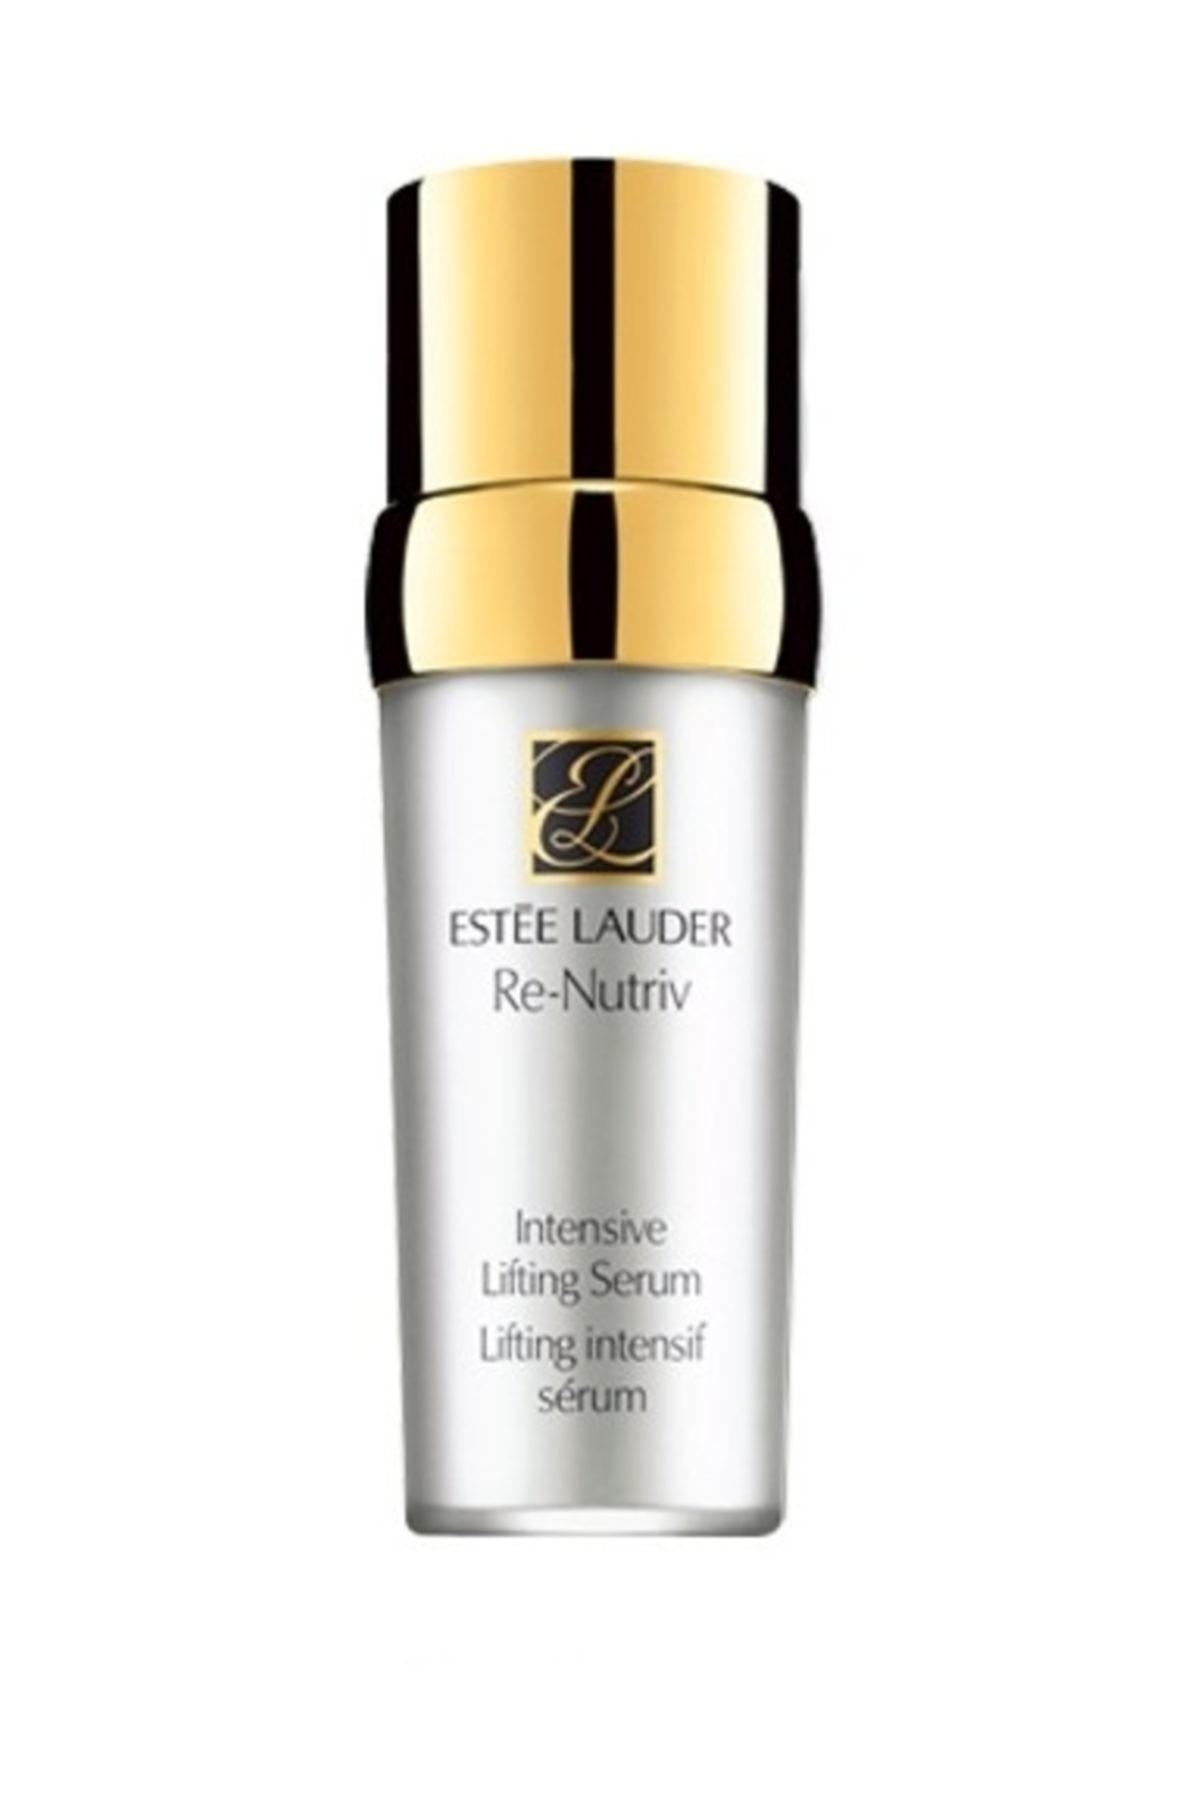 Estee Lauder Re-Nutriv Intensive Lifting Serum 30ml